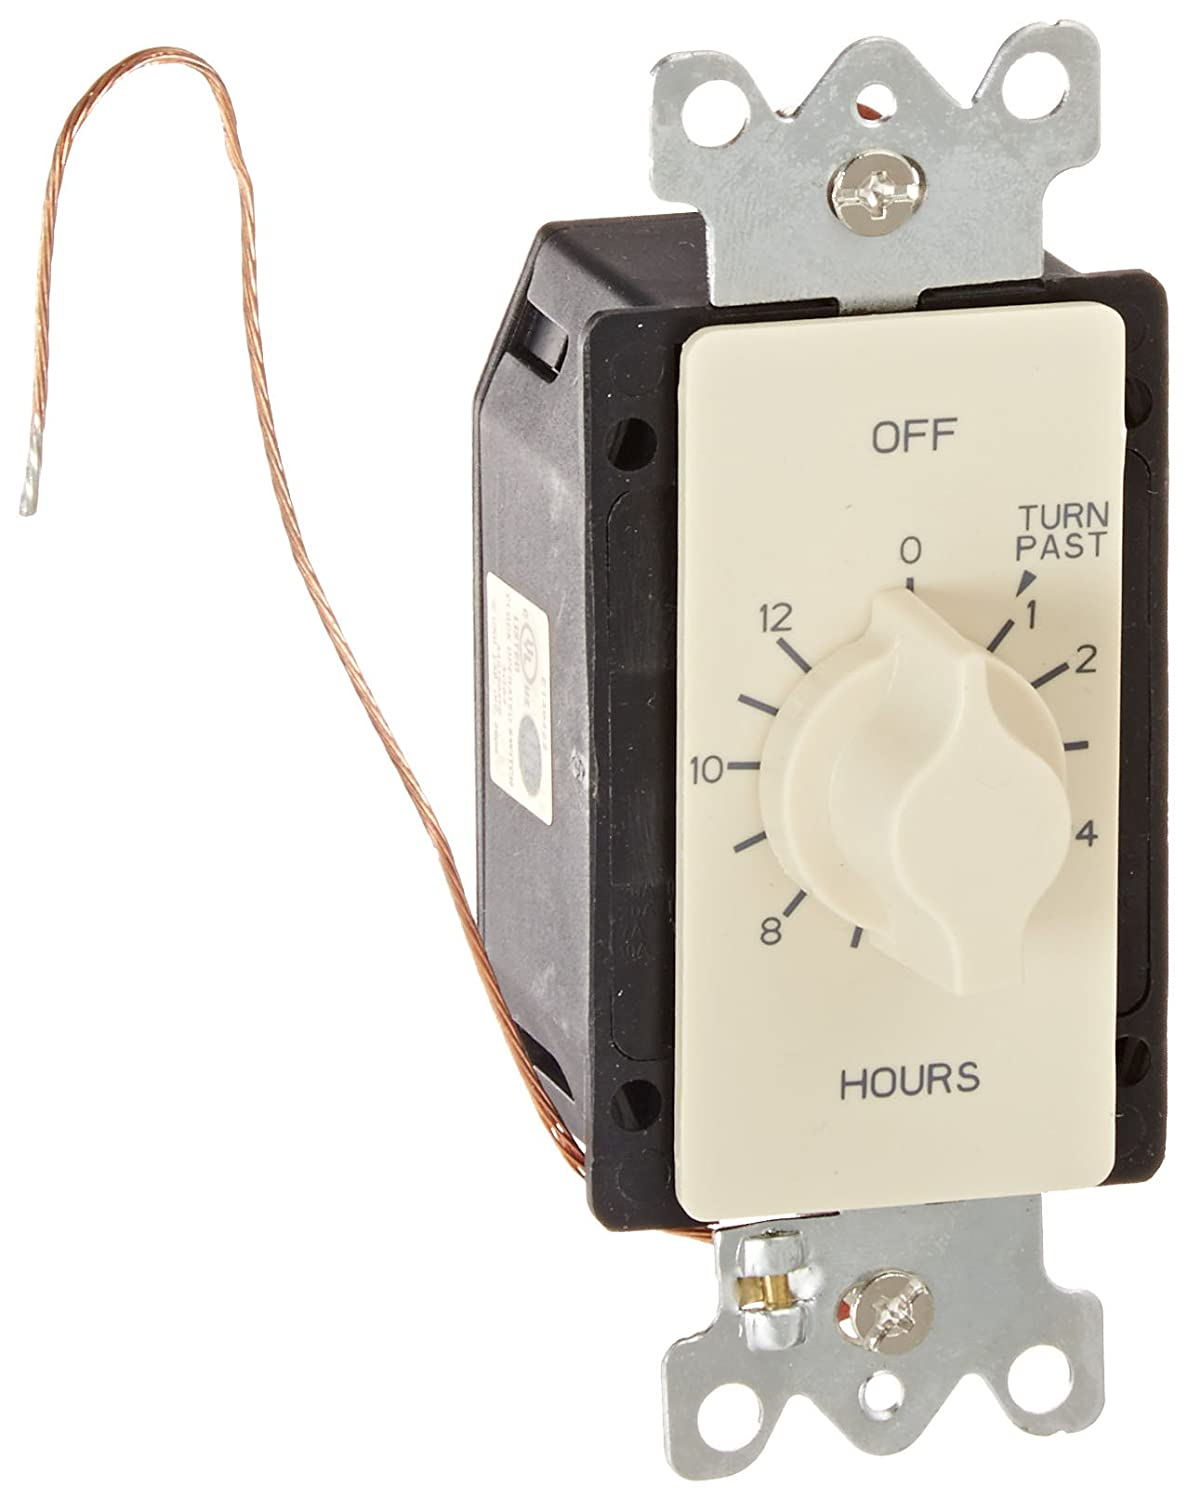 TORK A512H Spring-Wound in-Wall Twist Rapid rise Timer with 12-Hour Super popular specialty store Length